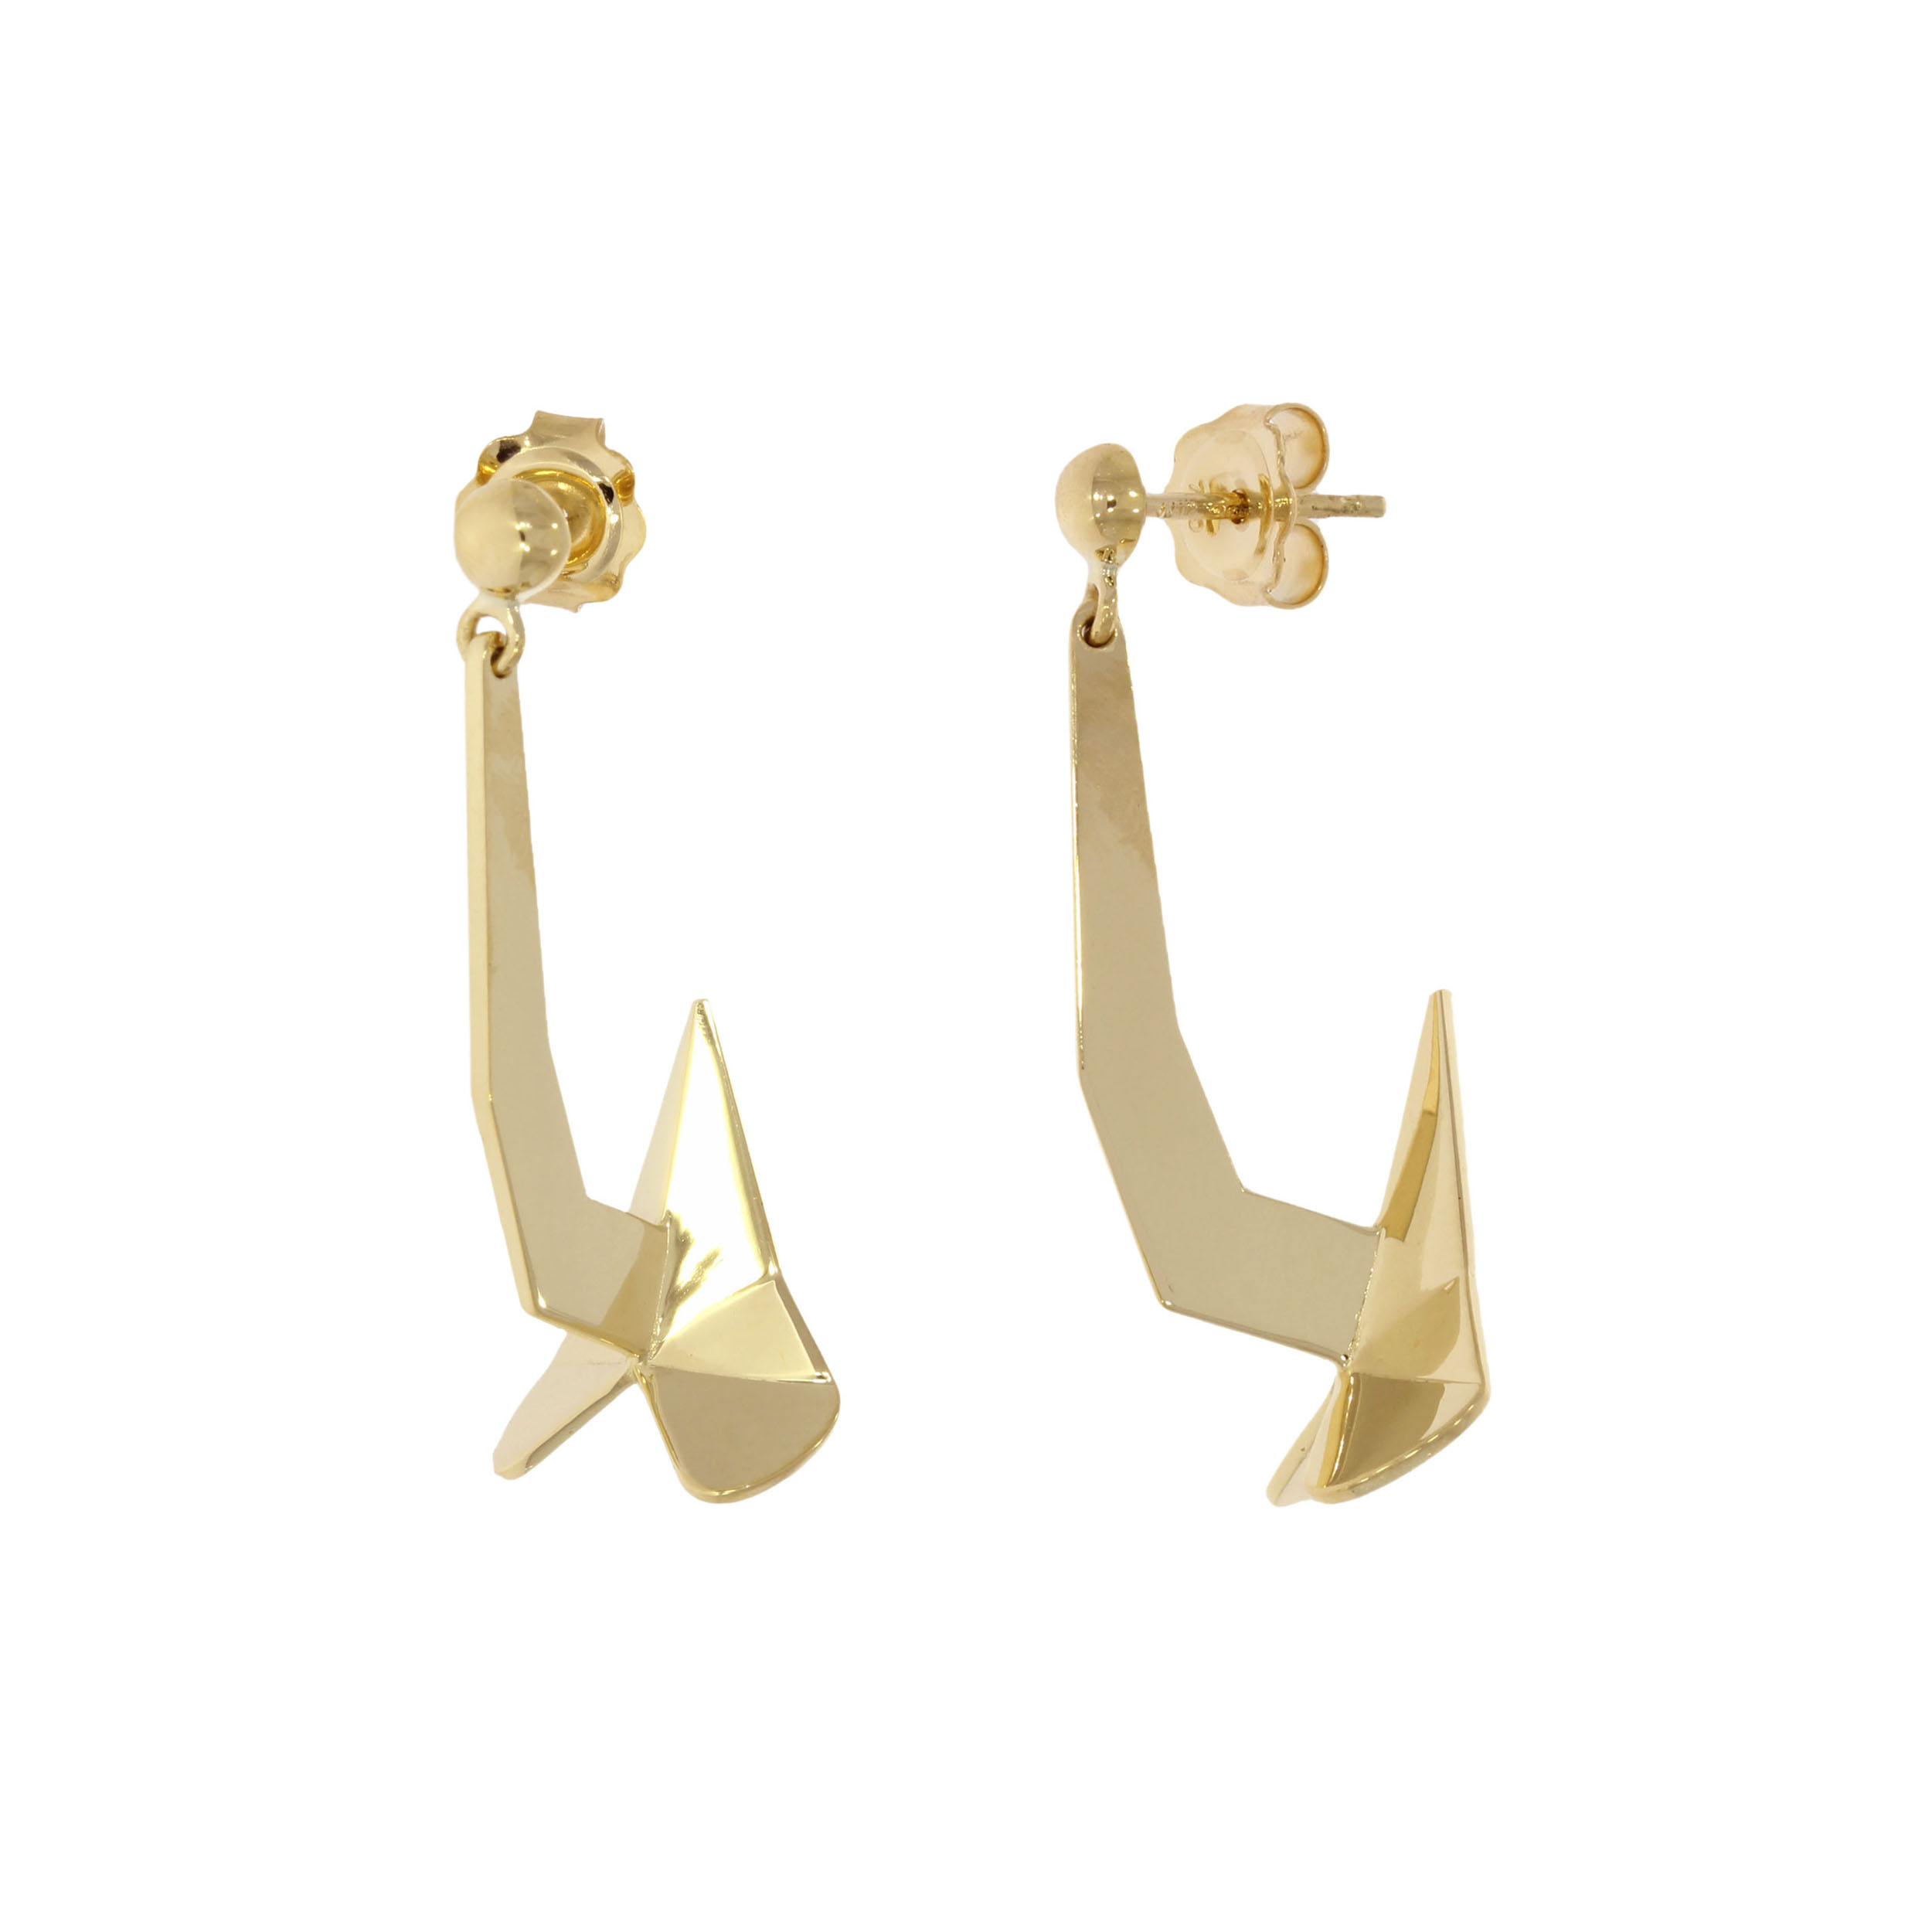 18ct Gold Geometric Ship Anchor Earrings